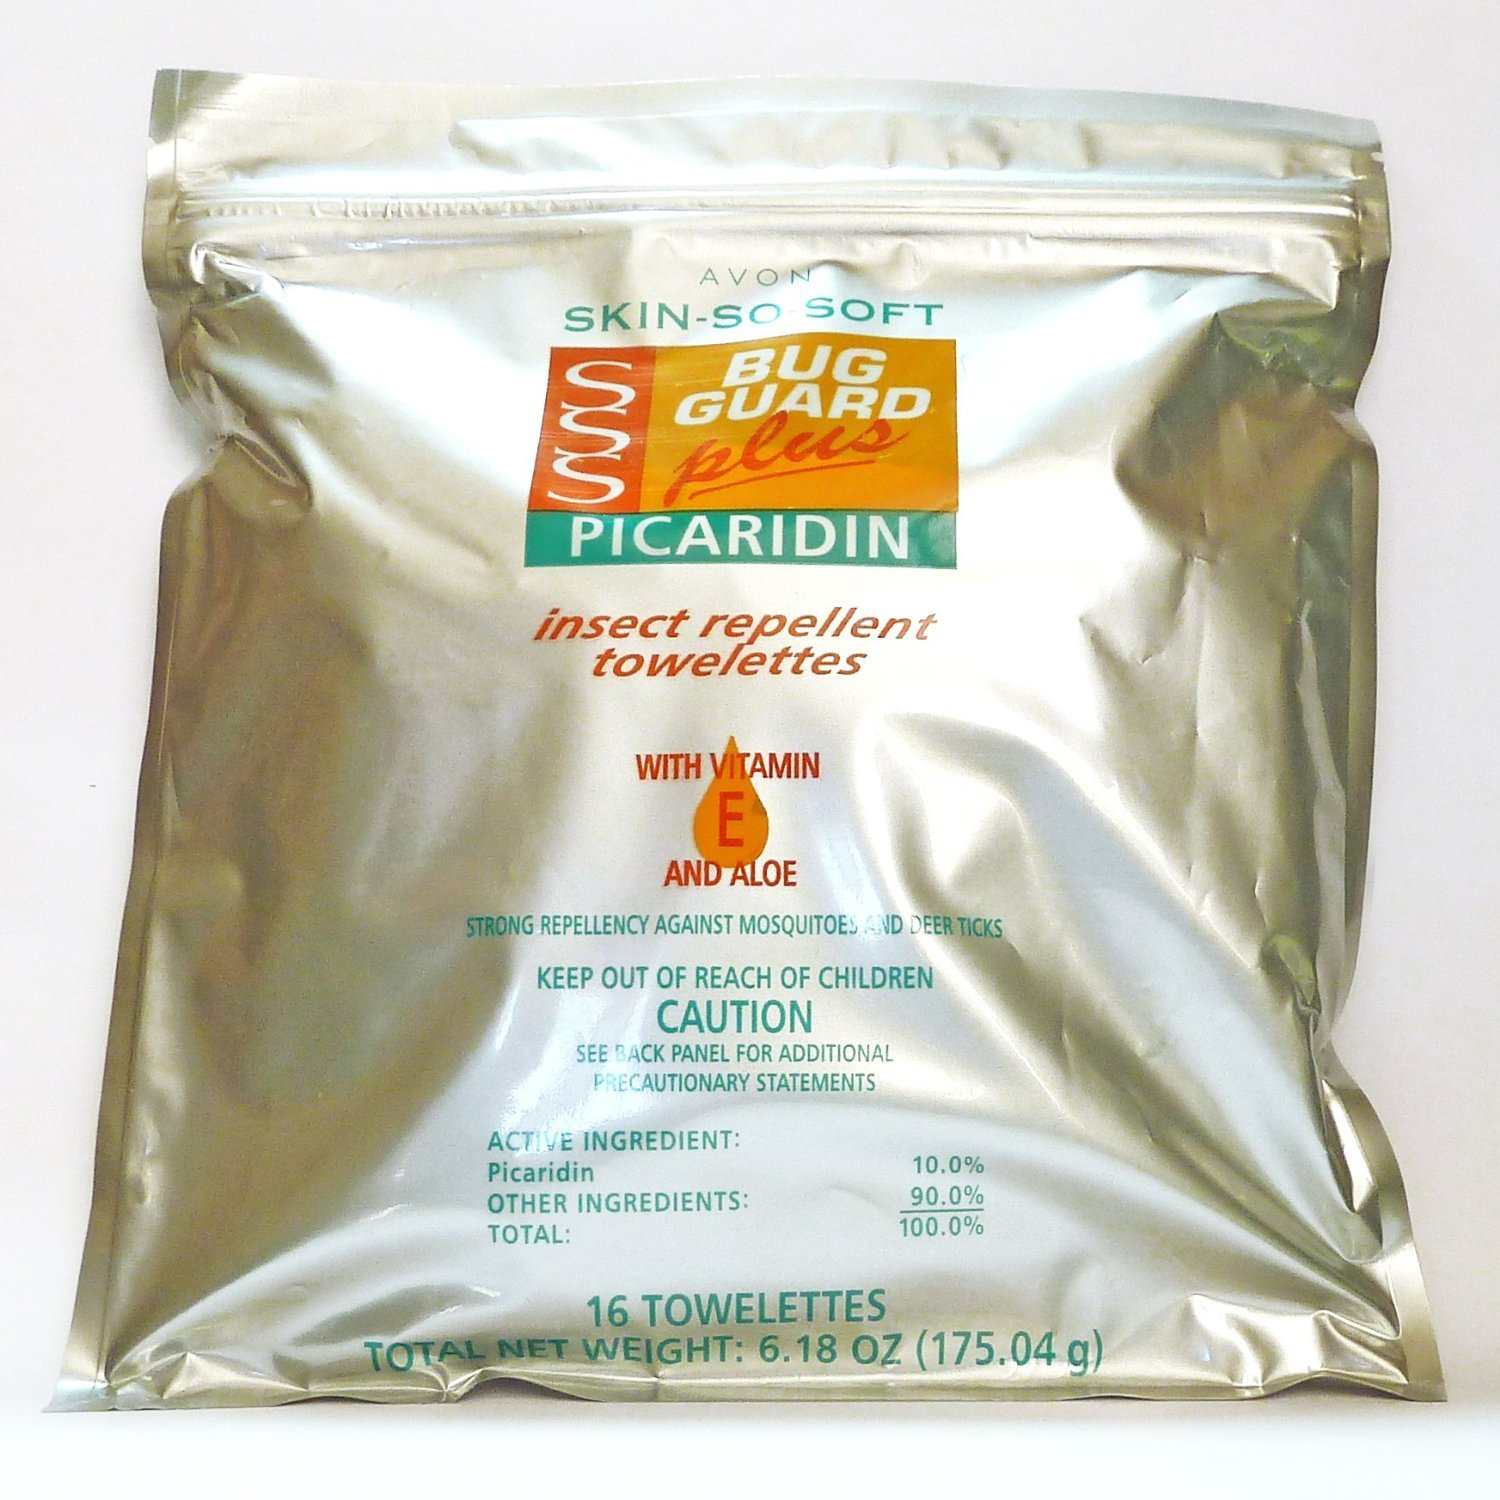 Avon SSS Bug Guard Plus Picaridin